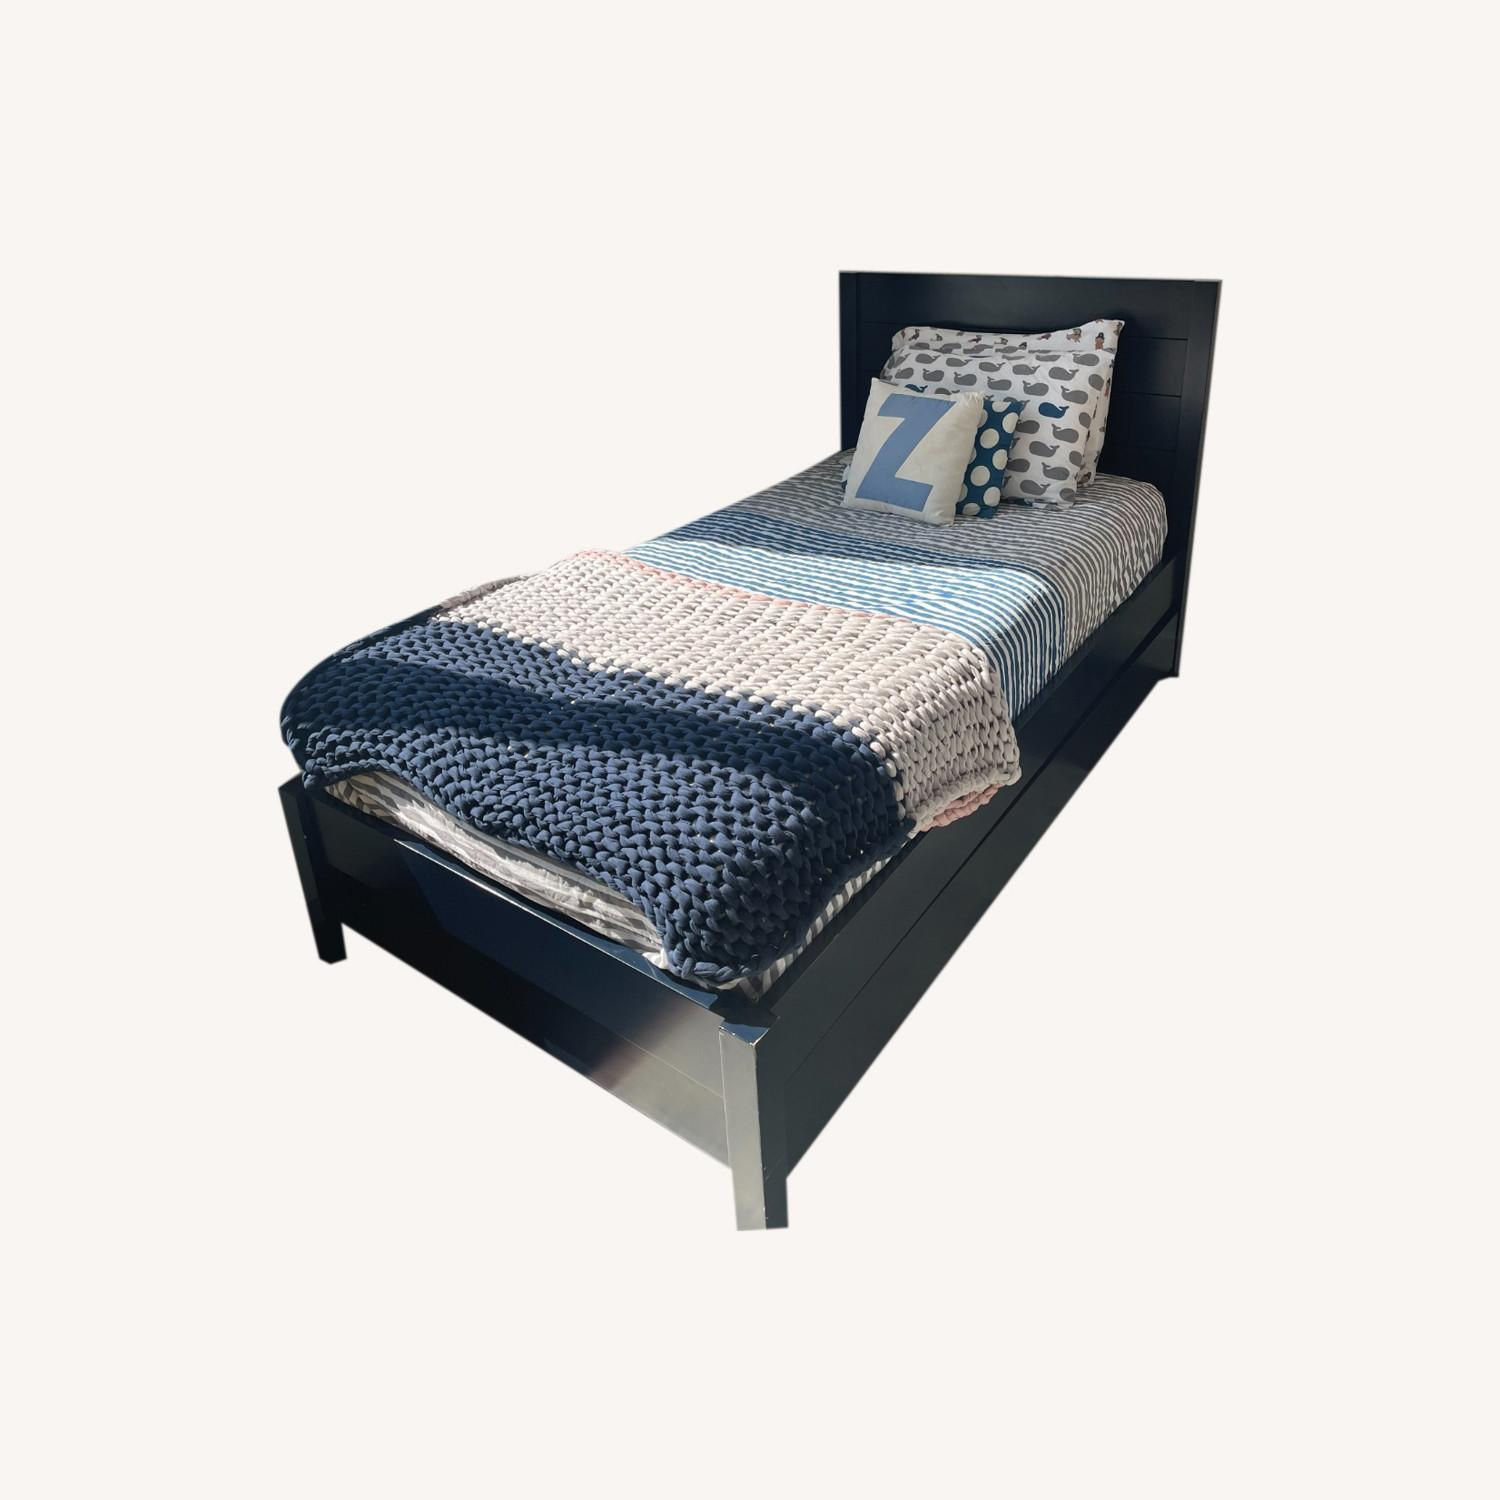 The Land of Nod/Crate Twin Bed + Trundle - image-0